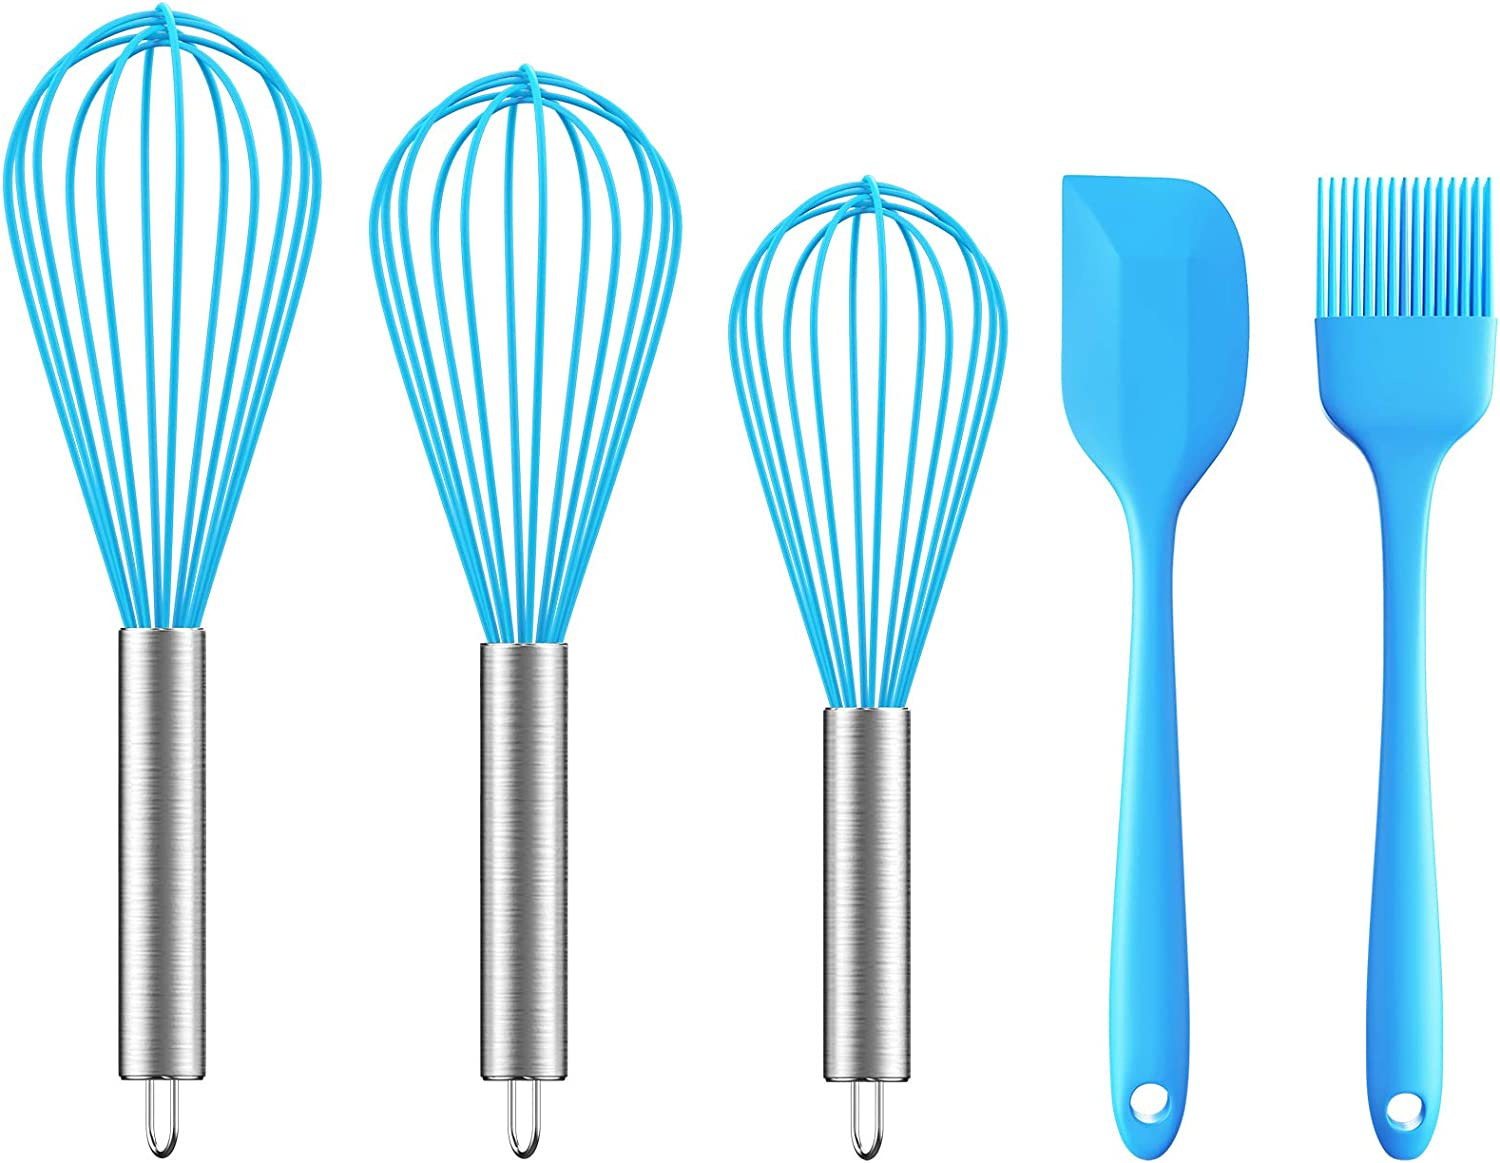 Ouddy 5 Pack Silicone Whisk Set Kitchen egg Whisk Wire Wisks for Cooking, Blending, Whisking, Beating, Stirring and Baking with Silicone Spatula & Silicone Brush (Blue)